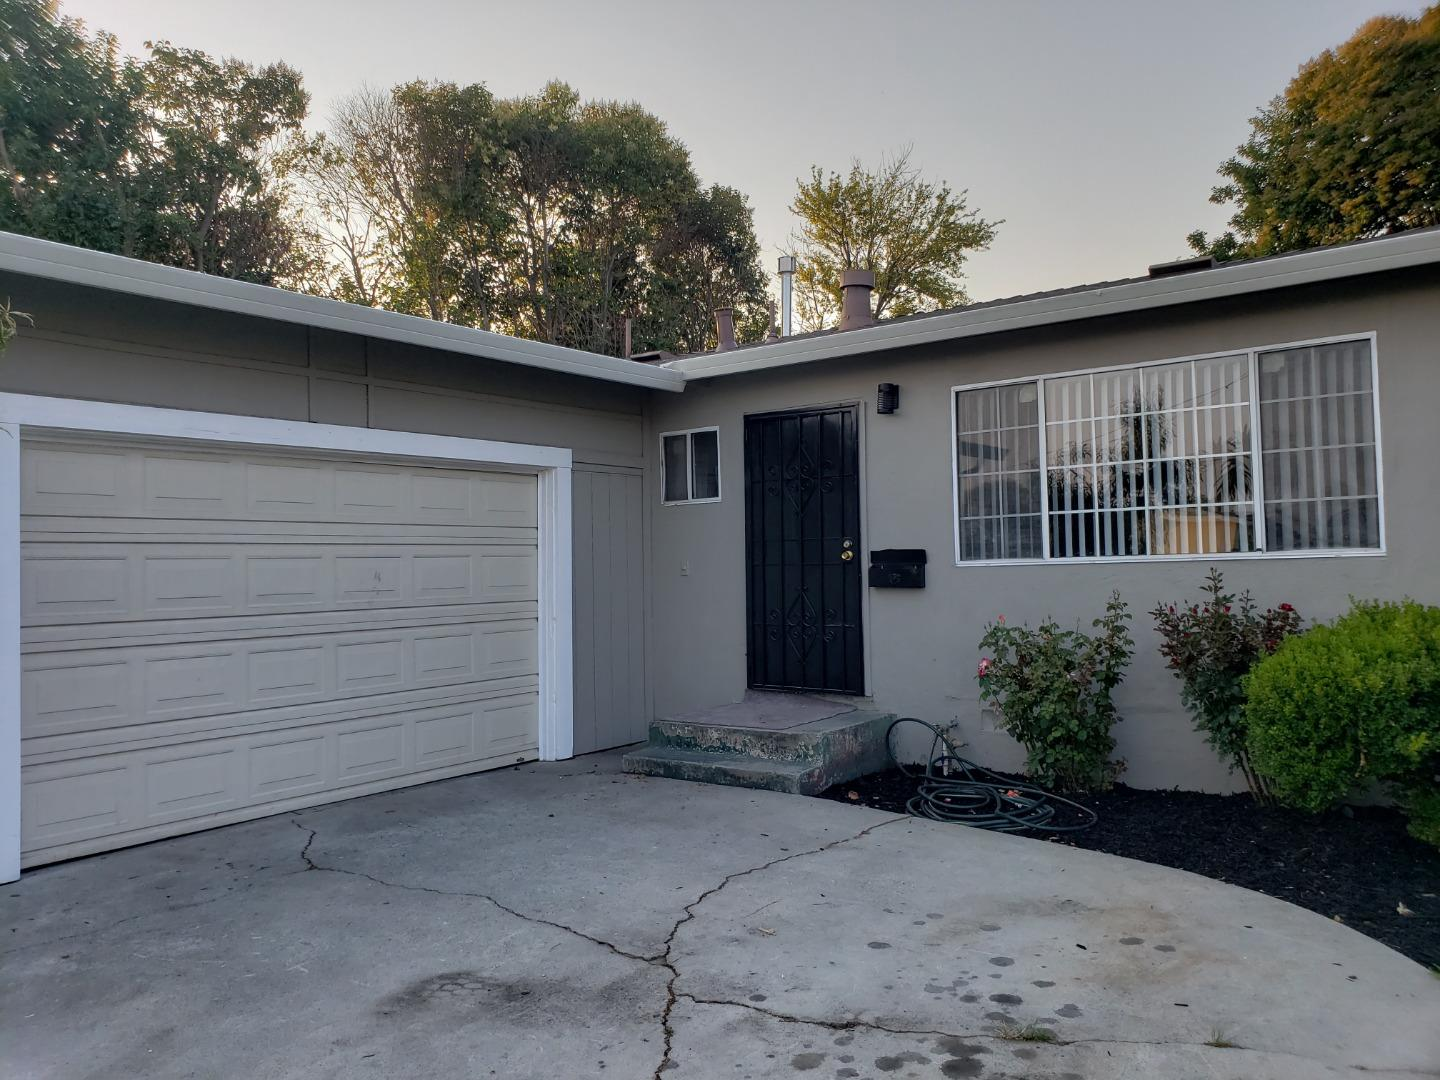 1155 No Sage Street East Palo Alto, CA 94303 - MLS #: ML81718645